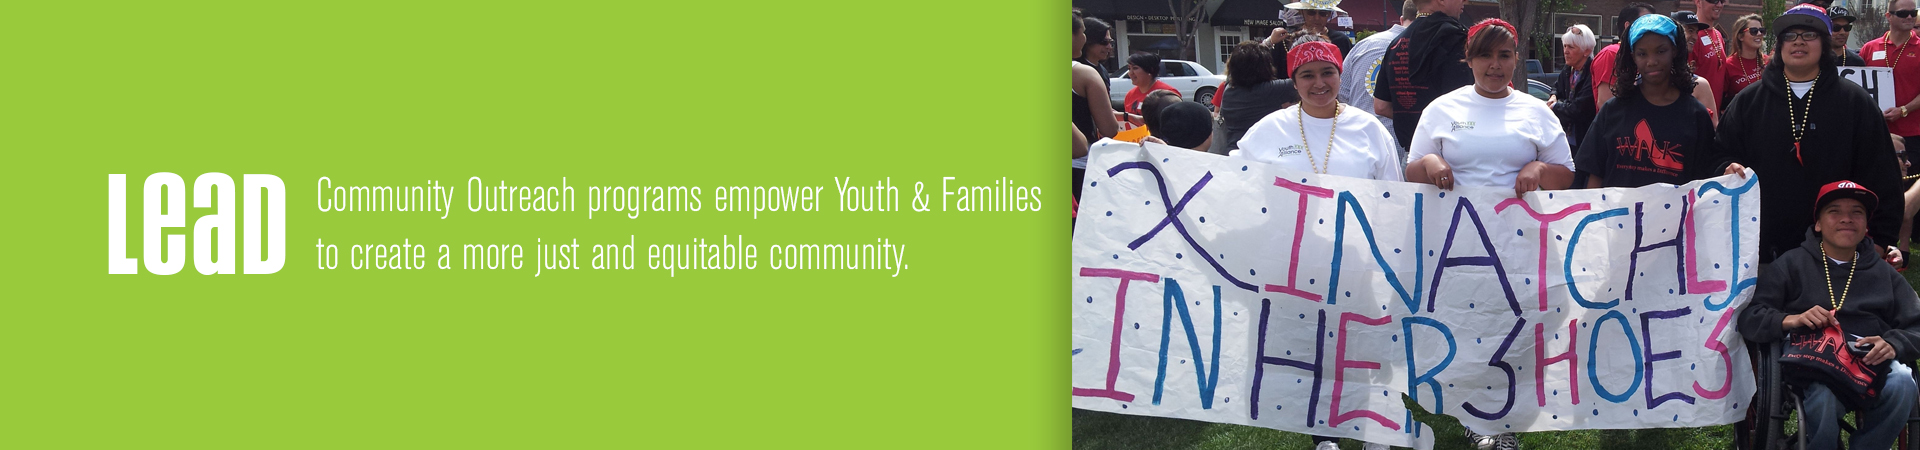 youth alliance leads through community outreach